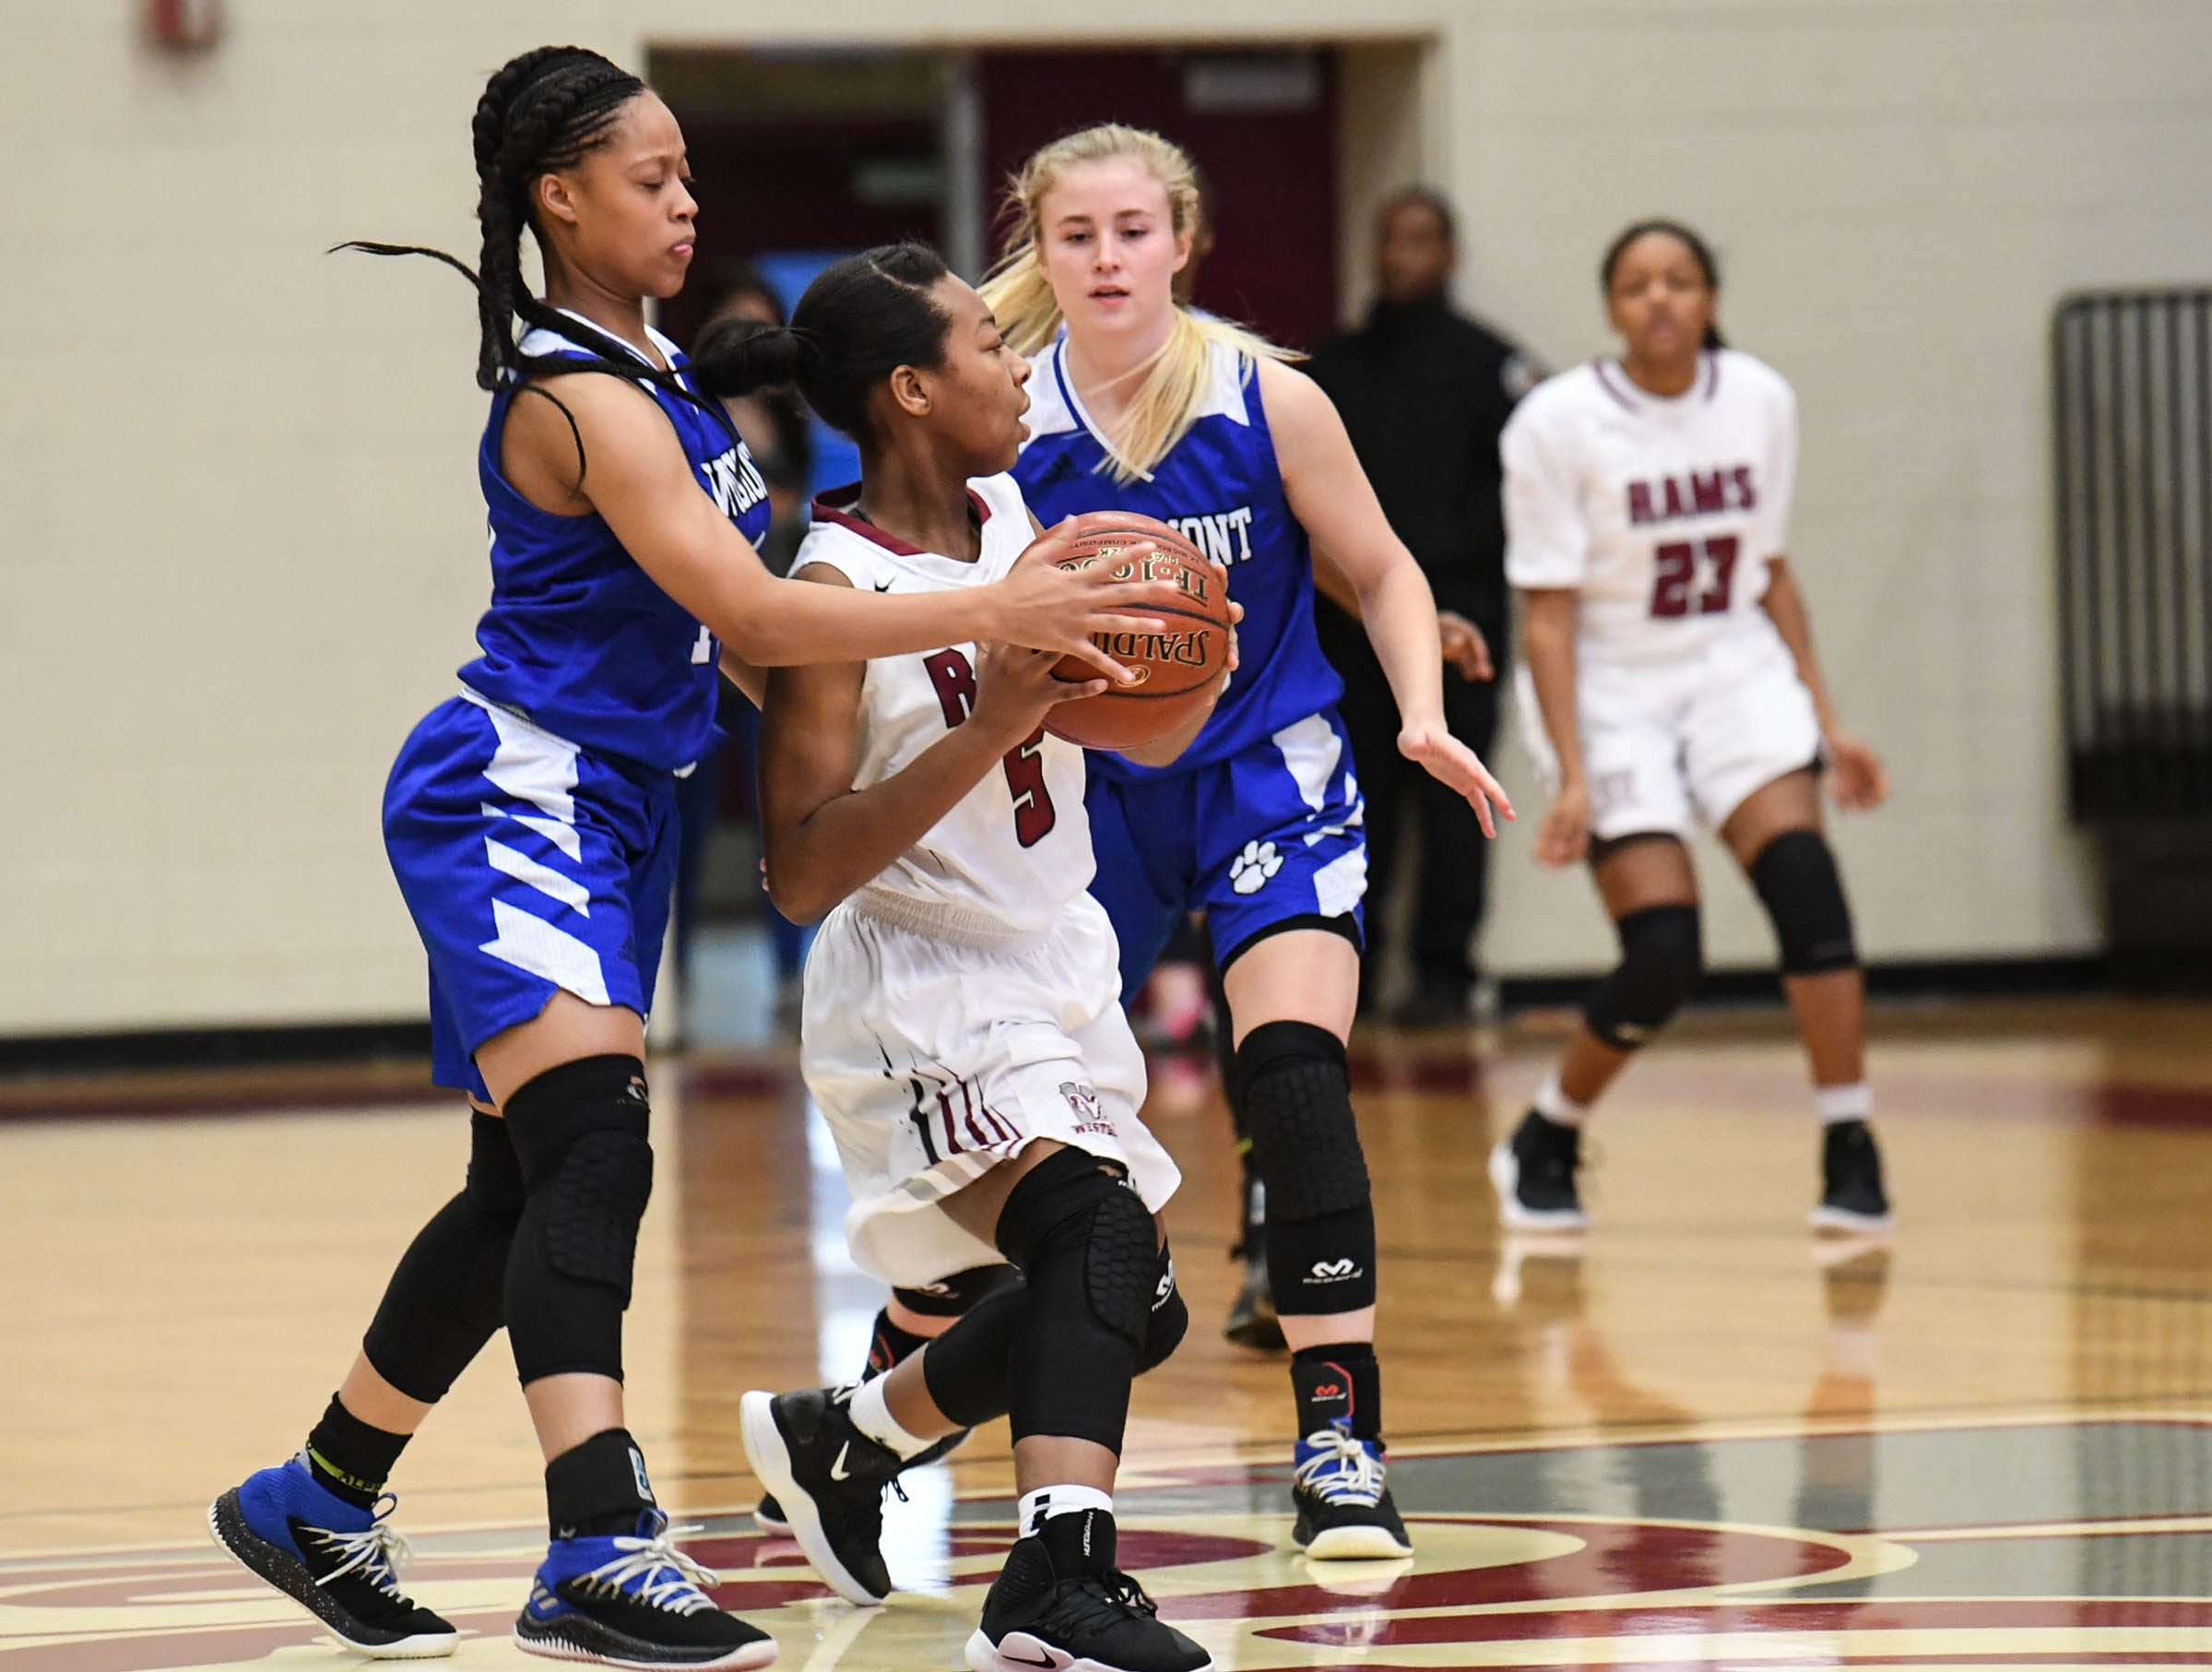 Westside senior Chelsea Adger(5), middle, picks up a loose ball near Woodmont senior Xan Rowland(20), right, and Woodmont senior Kitara Henry(33) during the first quarter at Westside High School in Anderson on Tuesday.